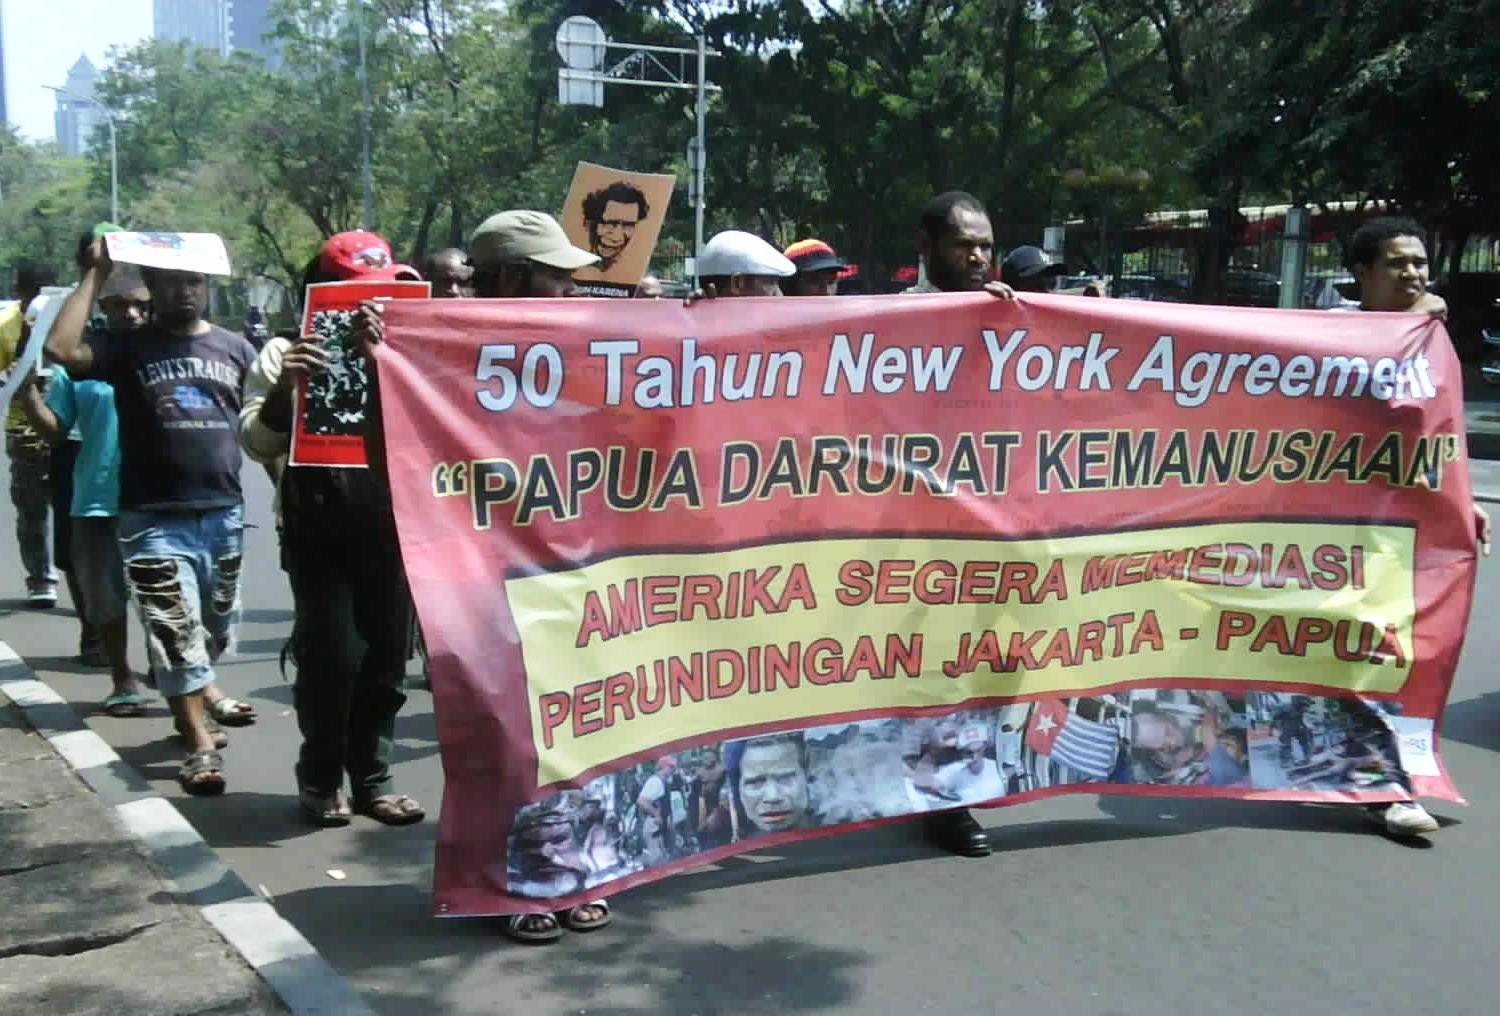 apuans protest at U.S. embassy in Jakarta, August 15, on 50th anniversary of signing New York Agreement.